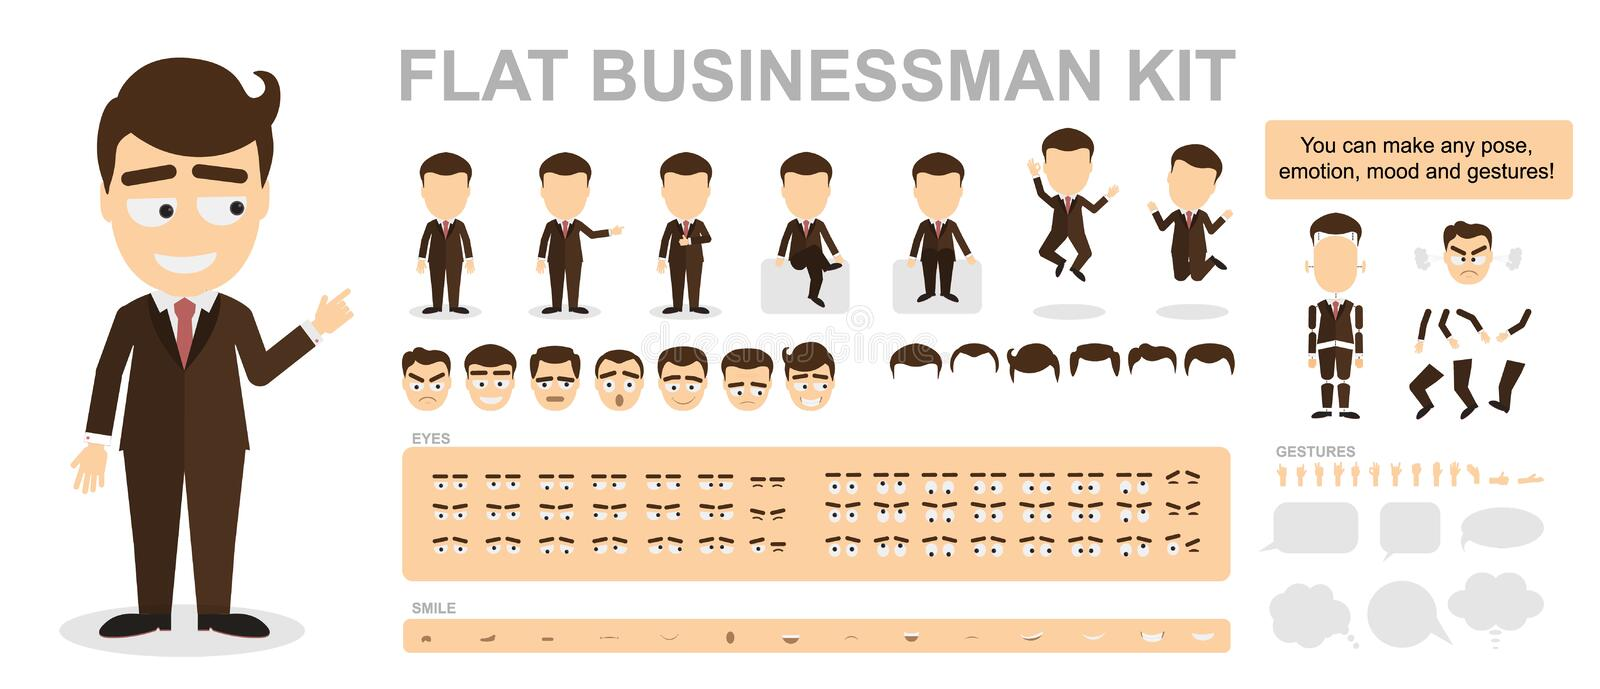 Flat businessman kit. You can make any pose, mood and gestures. Funny cartoon office worker. Creating avatar with construction vector illustration